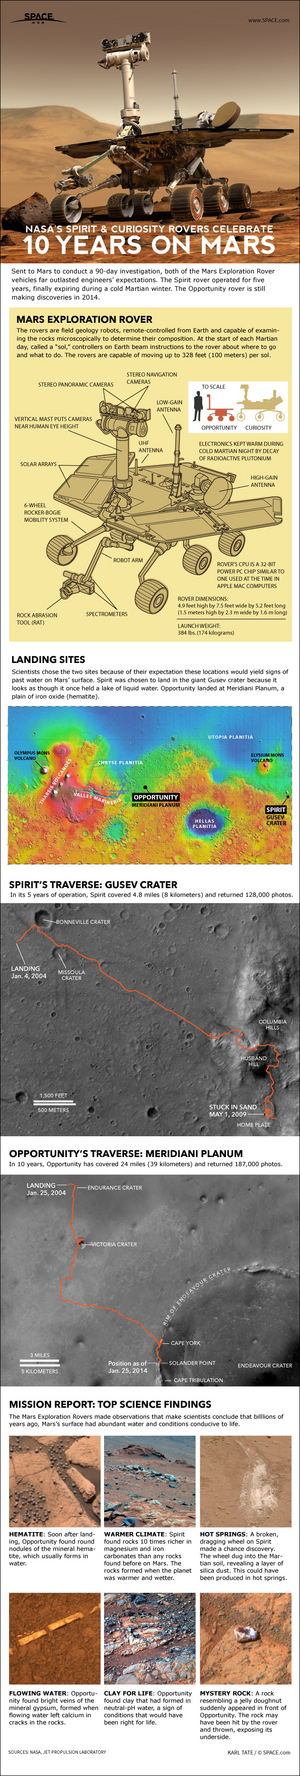 "For more than 10 years the robots have roved across Mars, making exciting discoveries about water in the planet's past. <a href=""http://www.space.com/24394-mars-rovers-spirit-opportunity-explained-infographic.html"">See the Mars rovers Spirit and Opportunity worked in this SPACE.com infographic</a>."